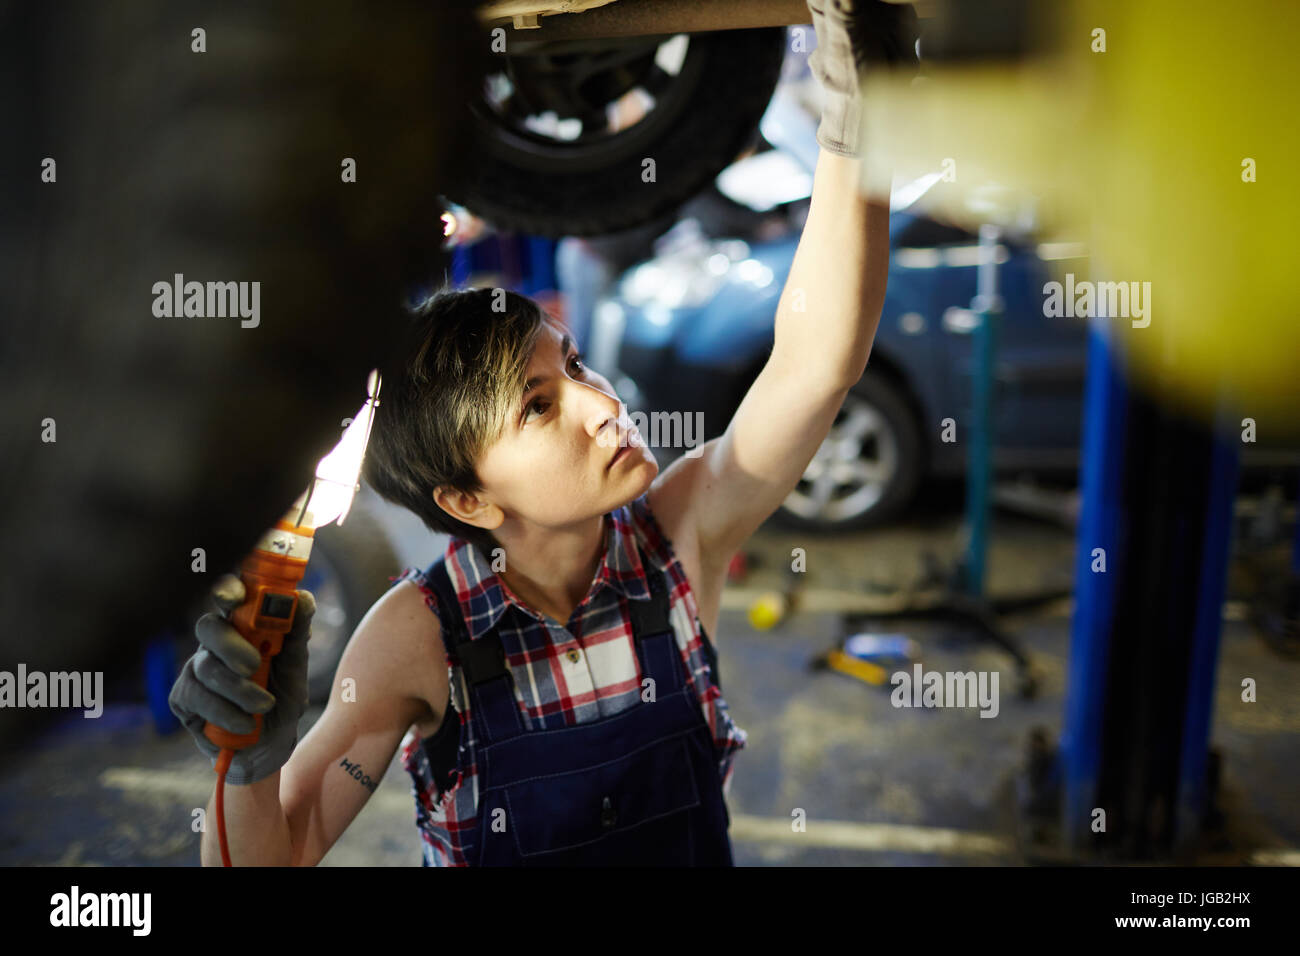 Car service worker - Stock Image